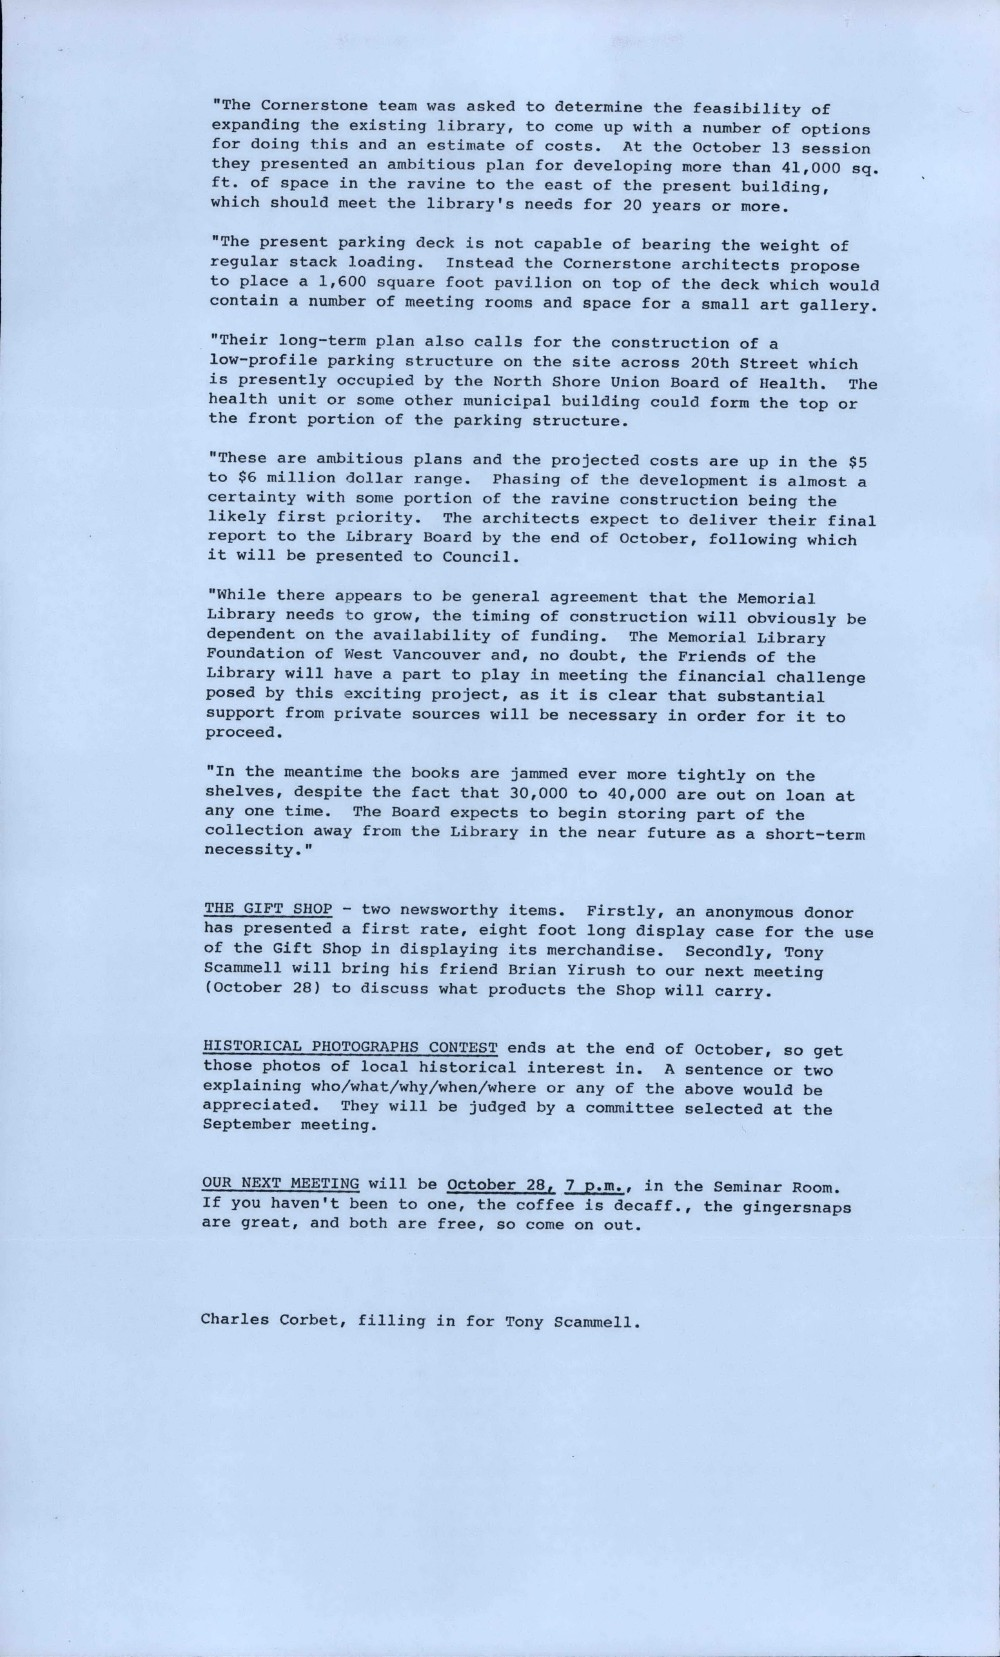 Friends of the Library Newsletter, October 1987